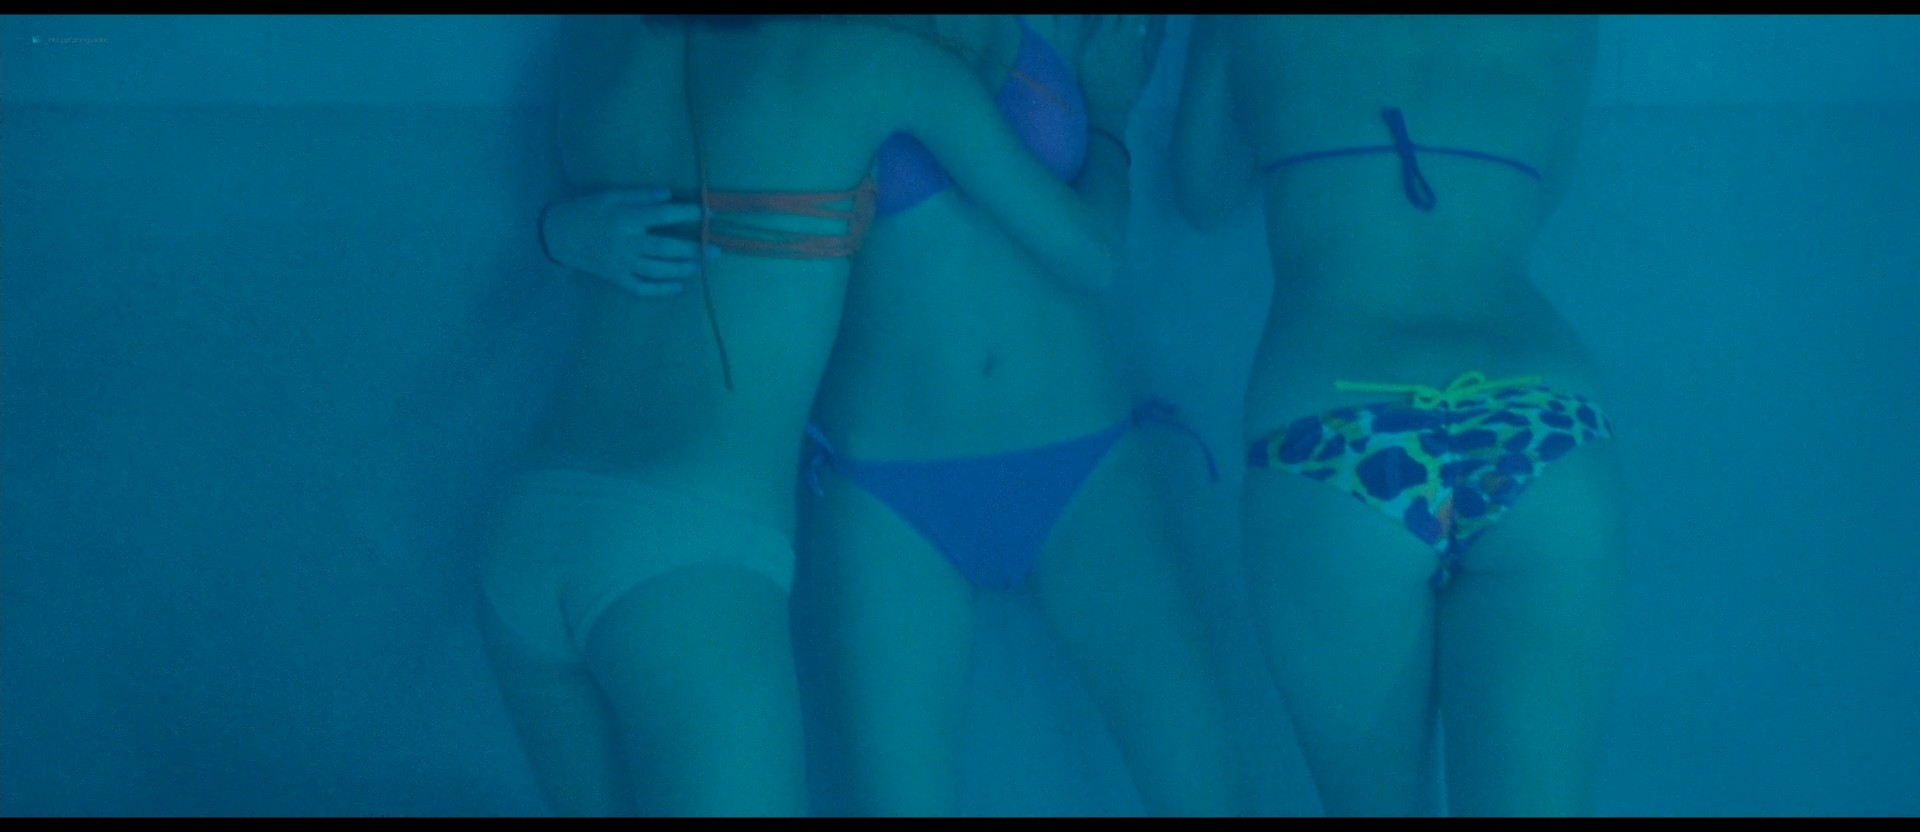 Ashley Benson nude skinny dipping others nude too - Spring Breakers (2012) HD 1080p BluRay (22)